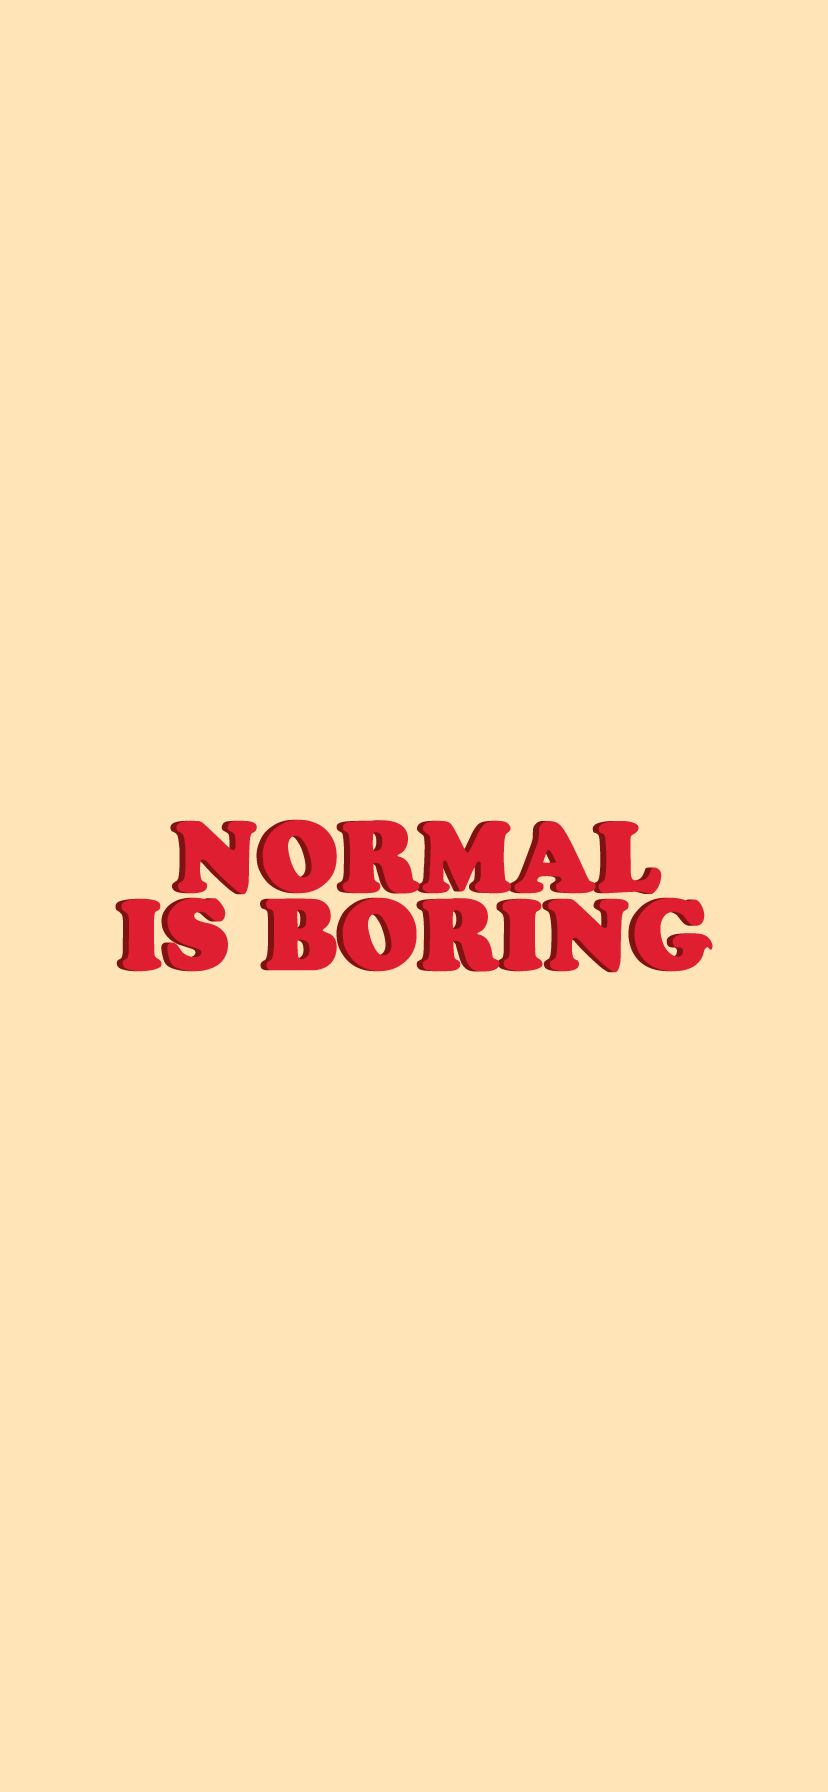 Normal Is Boring - Orange iPhone XR Wallpaper Background #cutewallpaperbackgrounds